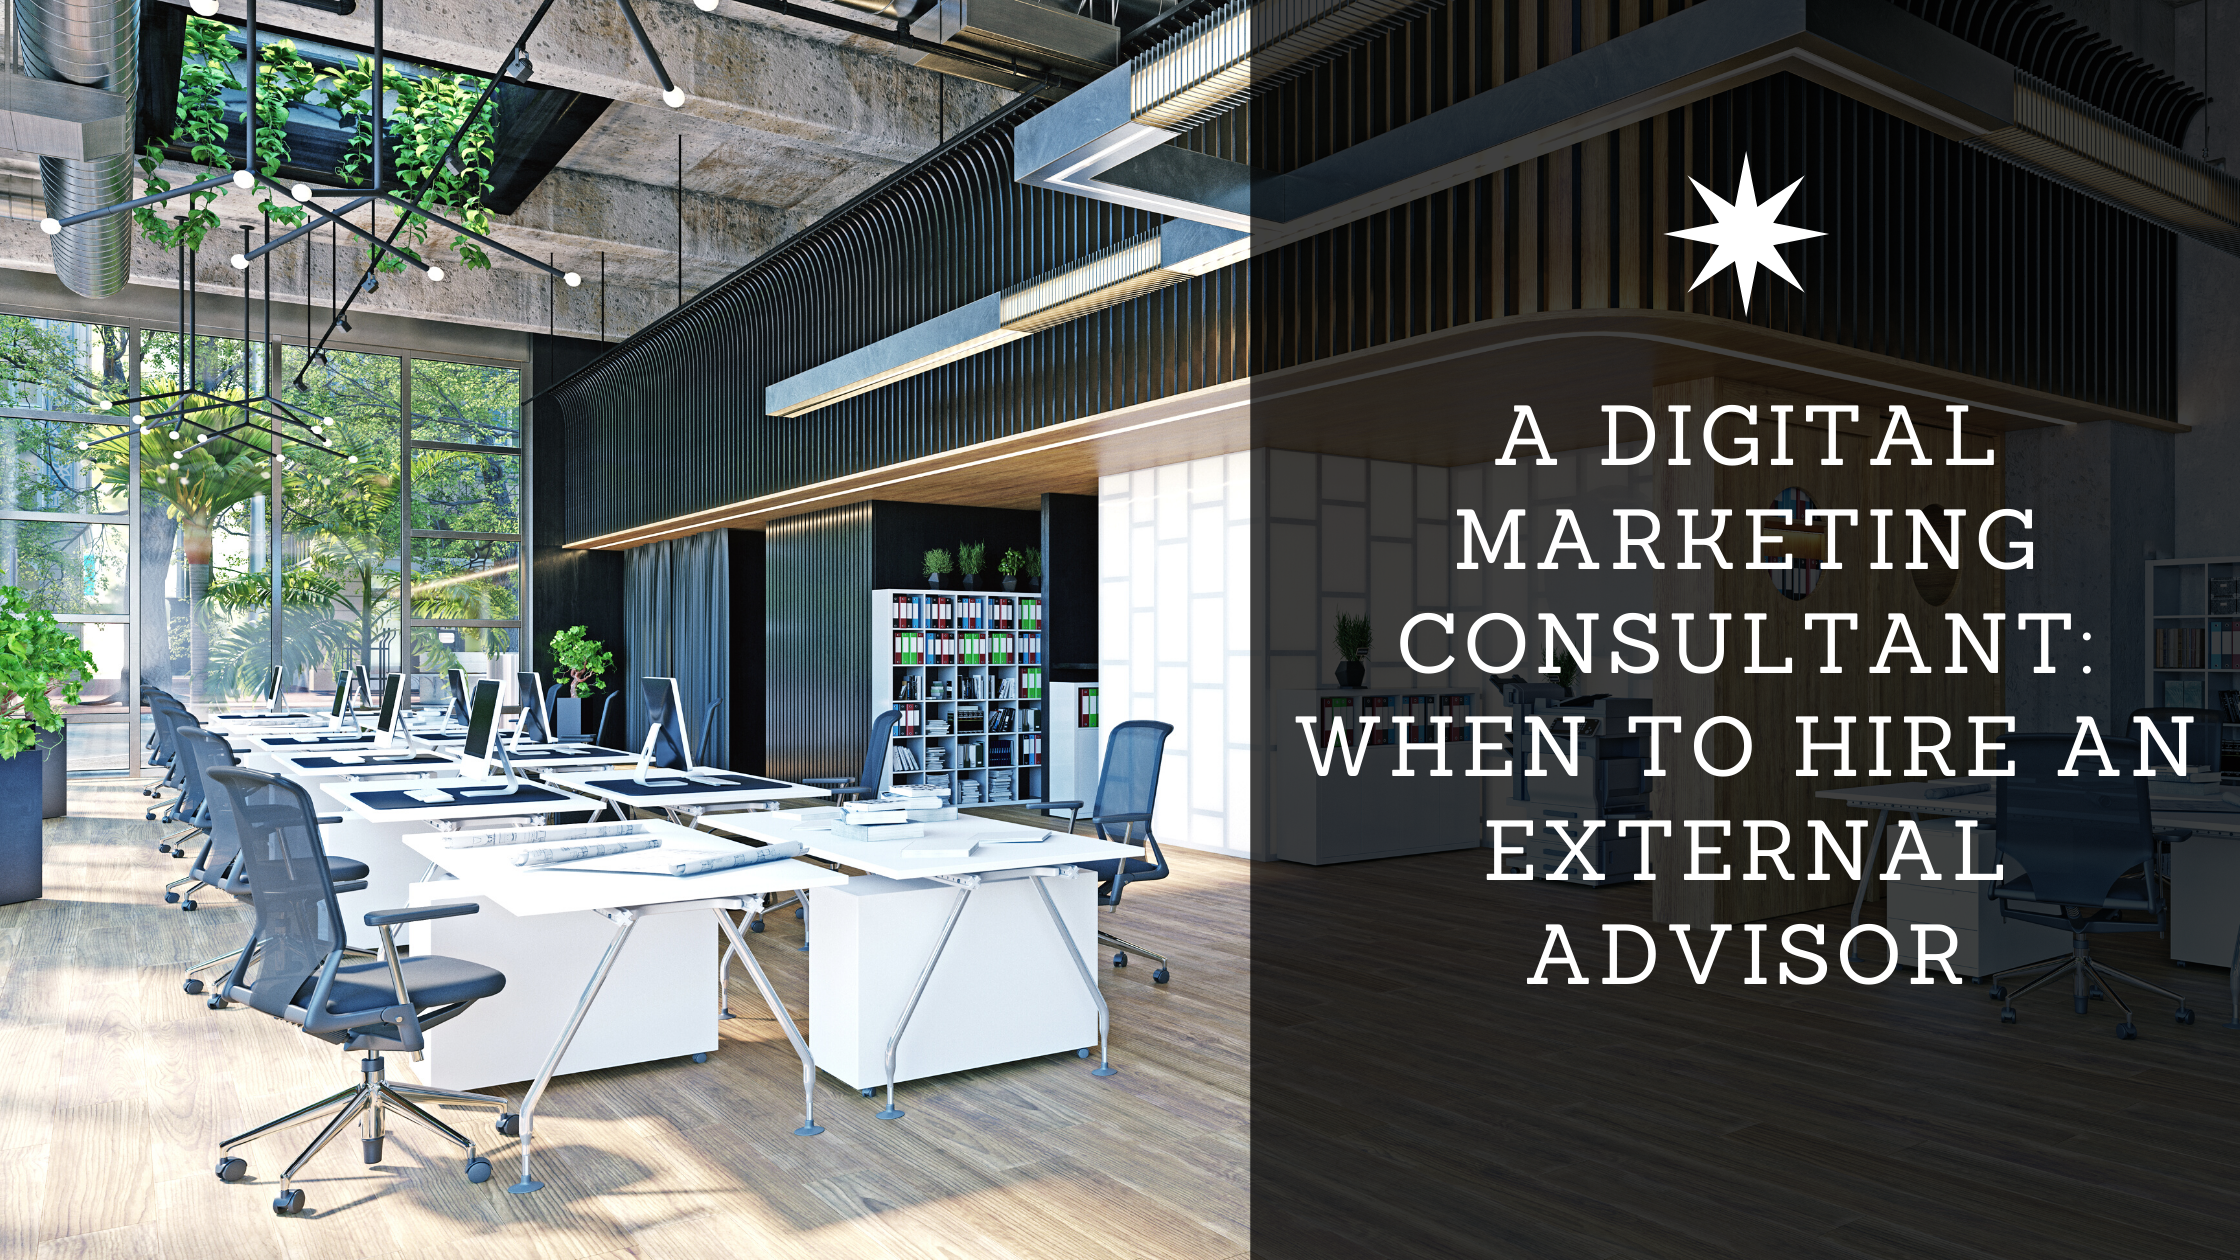 Open office with digital marketing title